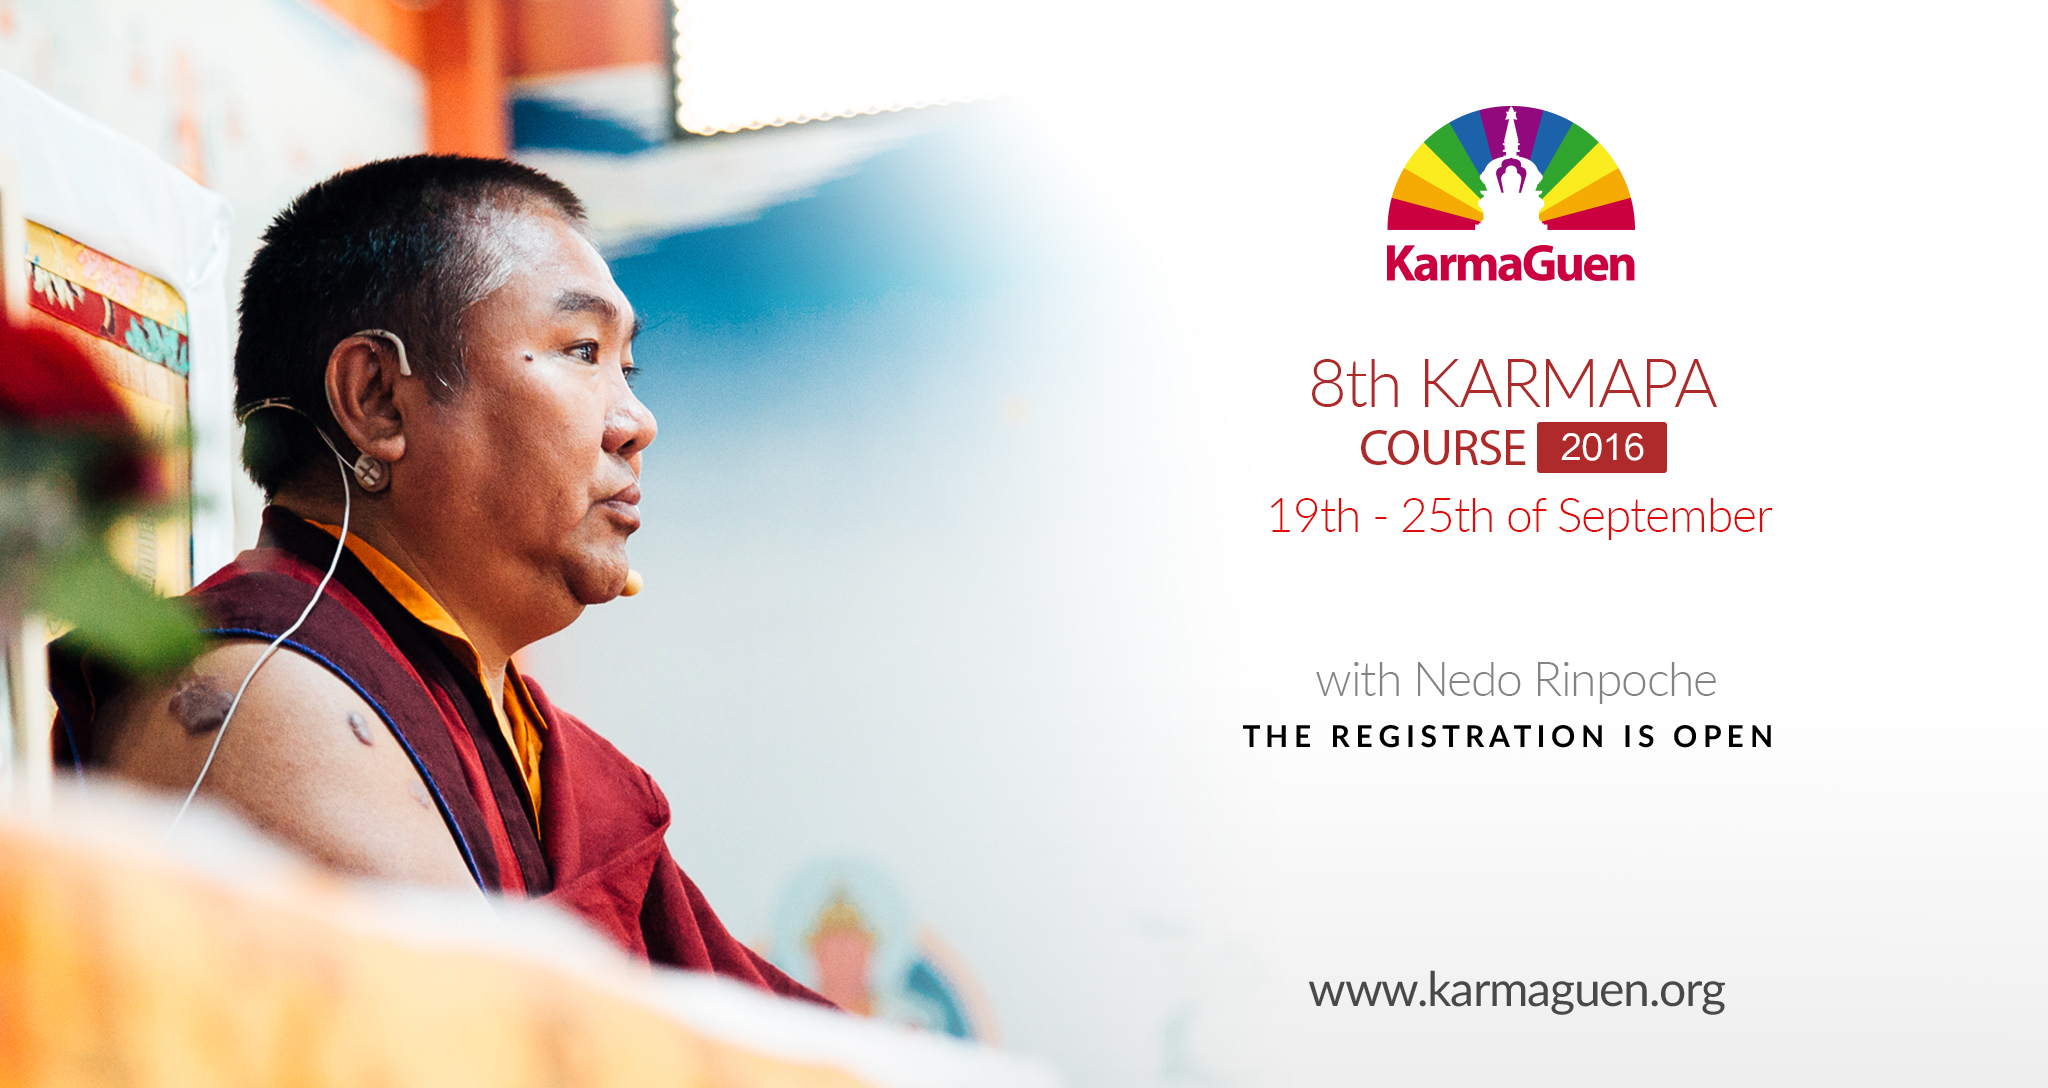 Nedo Rimpoche 8th Karmapa Course in Karma Guen